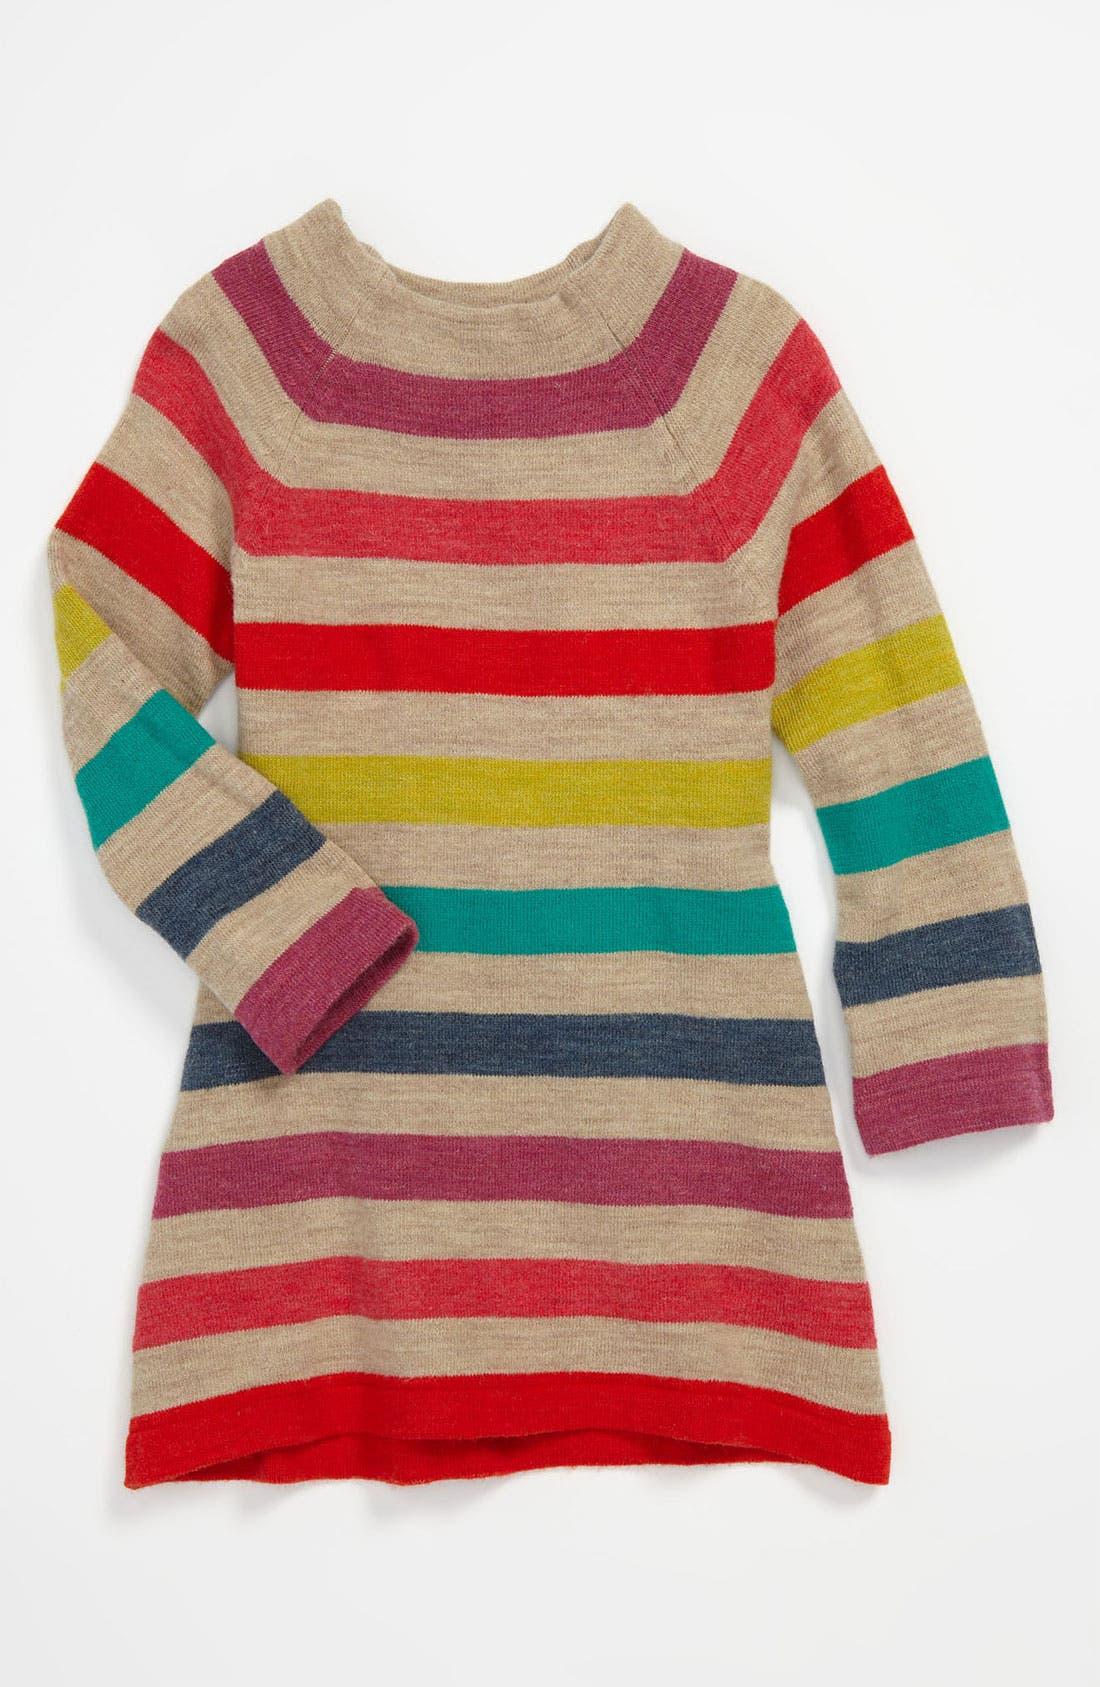 Alternate Image 1 Selected - United Colors of Benetton Kids Stripe Knit Dress (Infant)